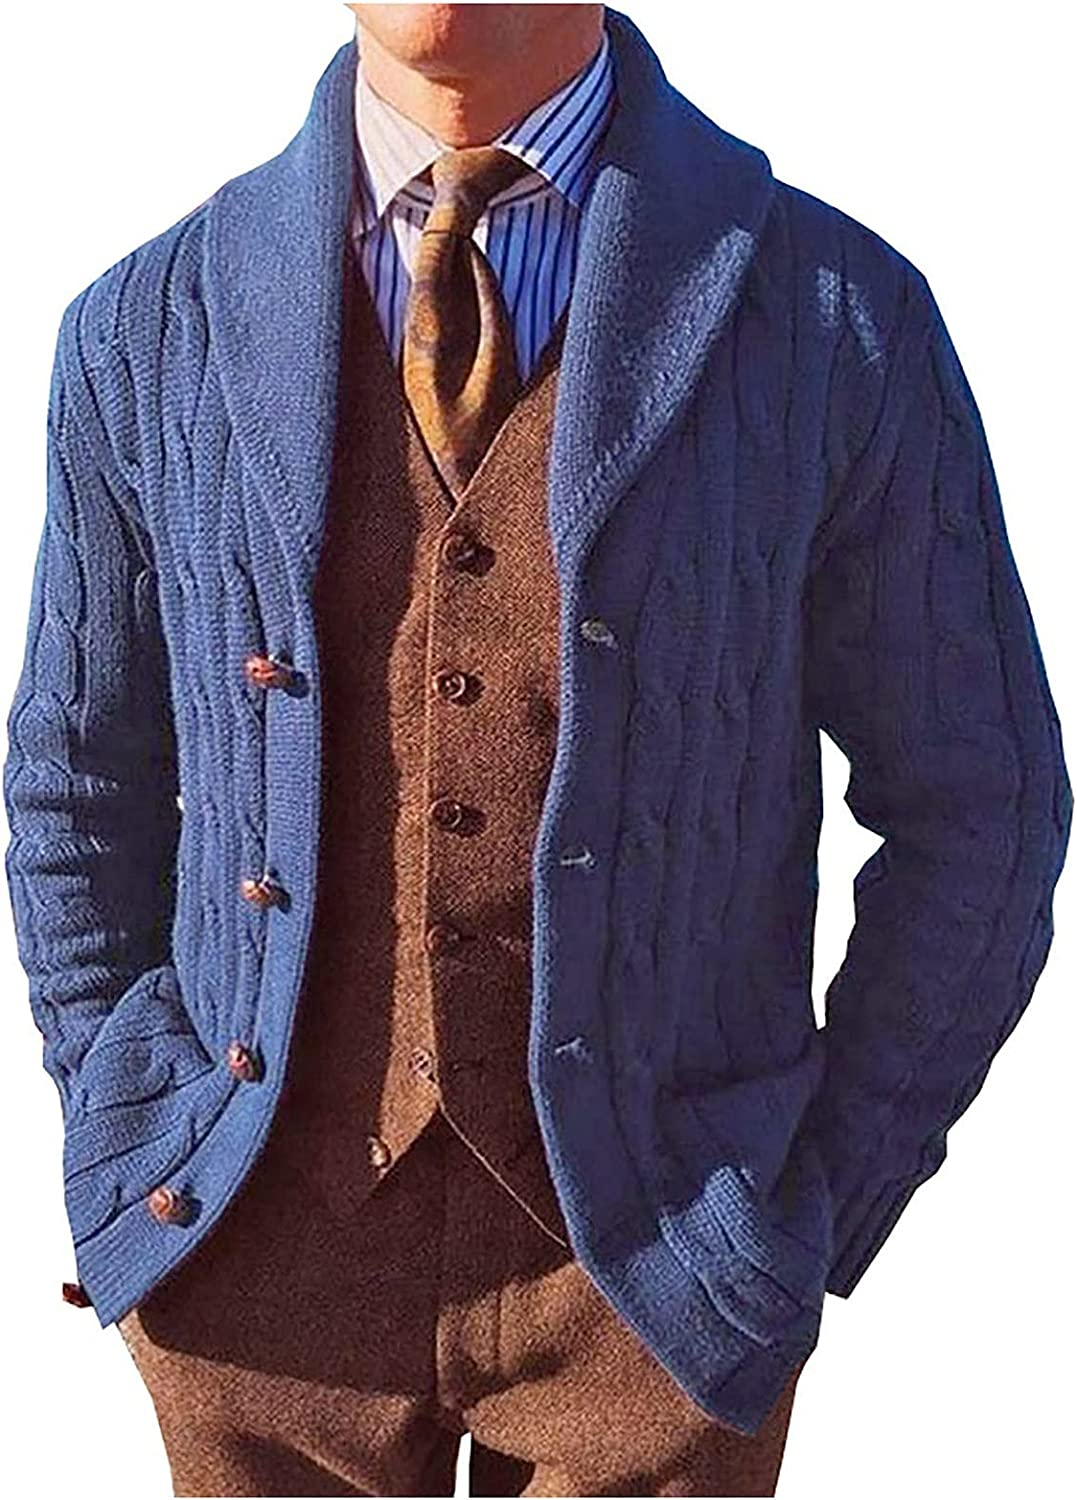 Huangse Mens Stylish Cardigan Sweater Knitted Solid Color Button Casual Shawl Collar Chunky Wool Sweaters